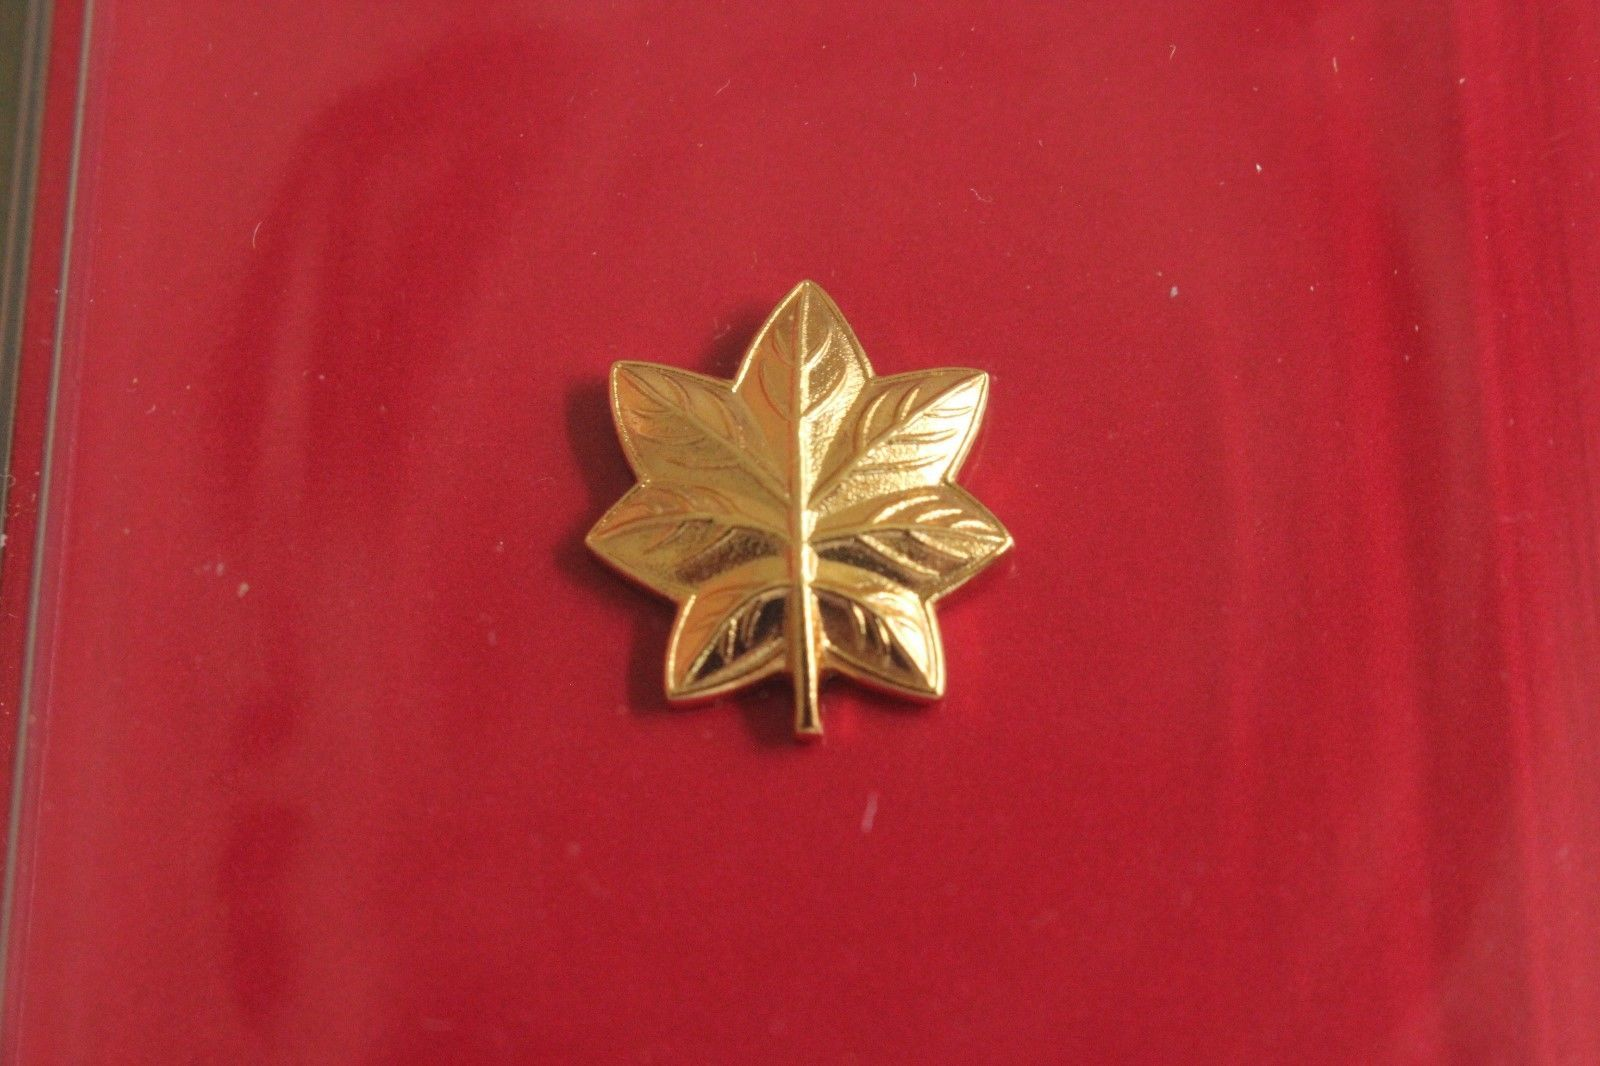 USN US NAVY O-4 LCDR RANK OFFICER GARRISON CAP BADGE & DEVICE REDUCED SIZE MINI